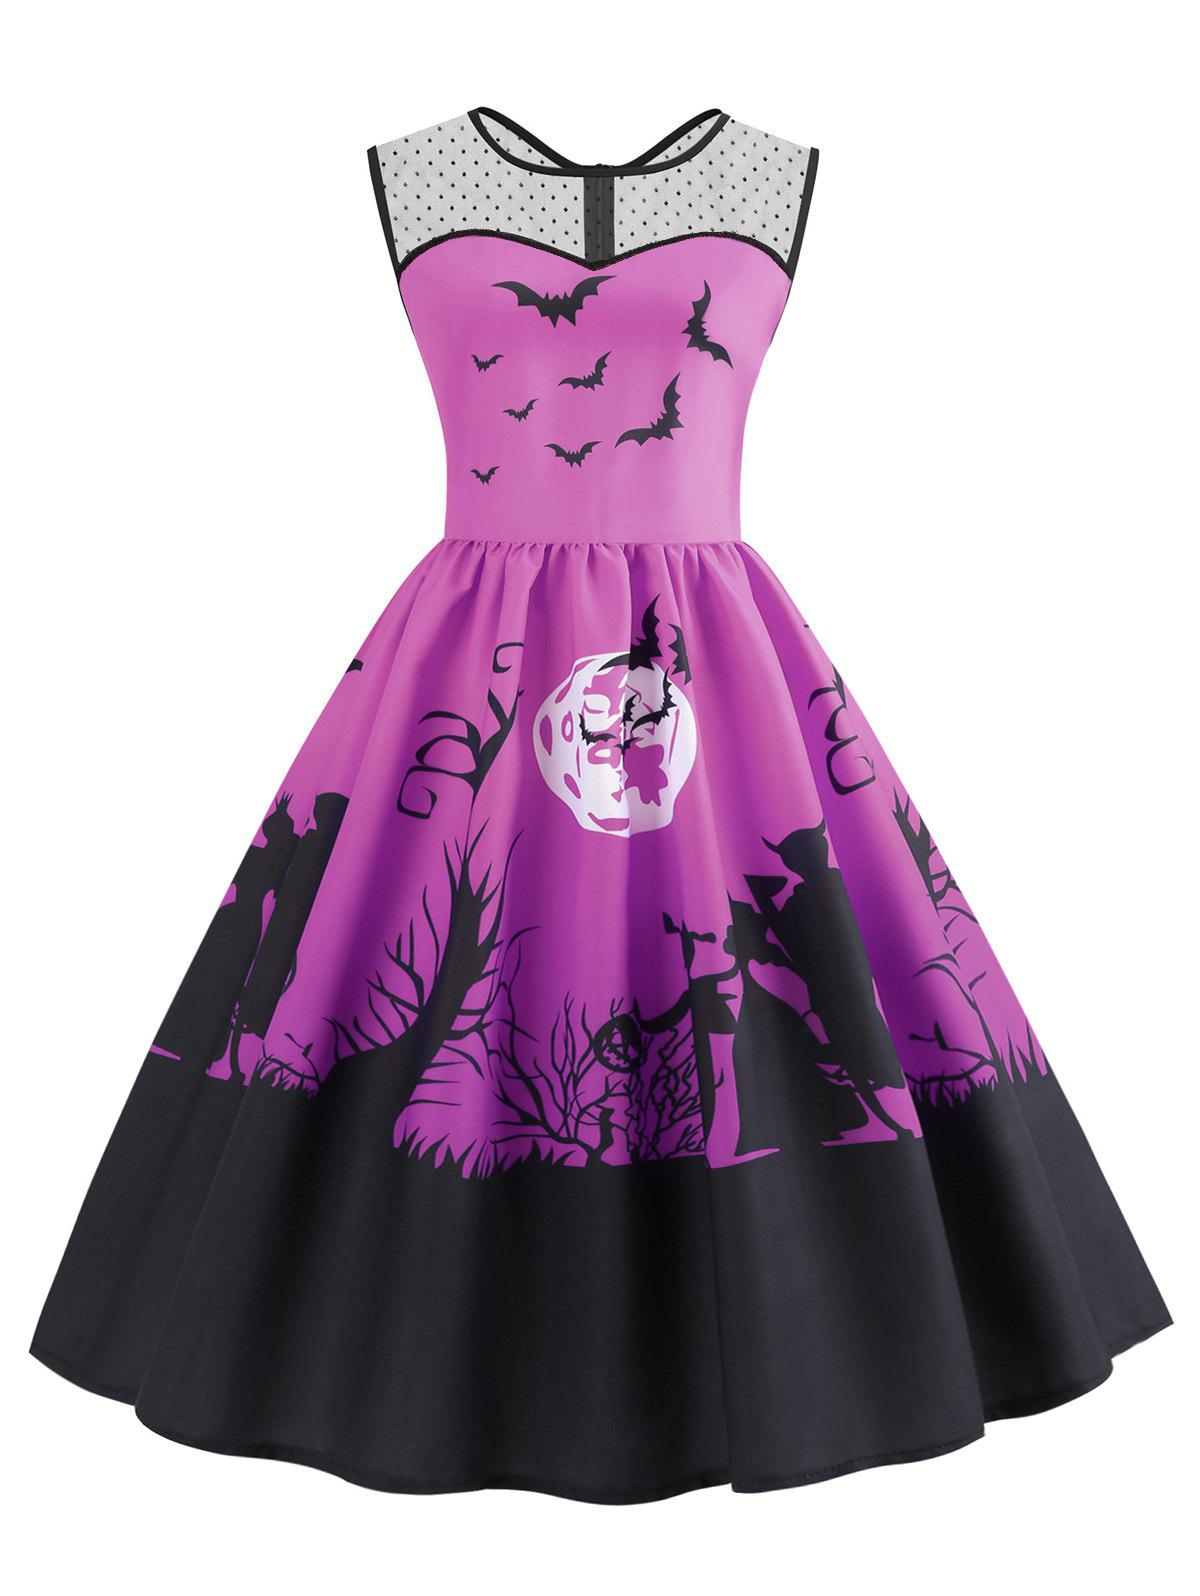 Mesh Panel Bat Print Flared Halloween Dress - DARK CARNATION PINK S